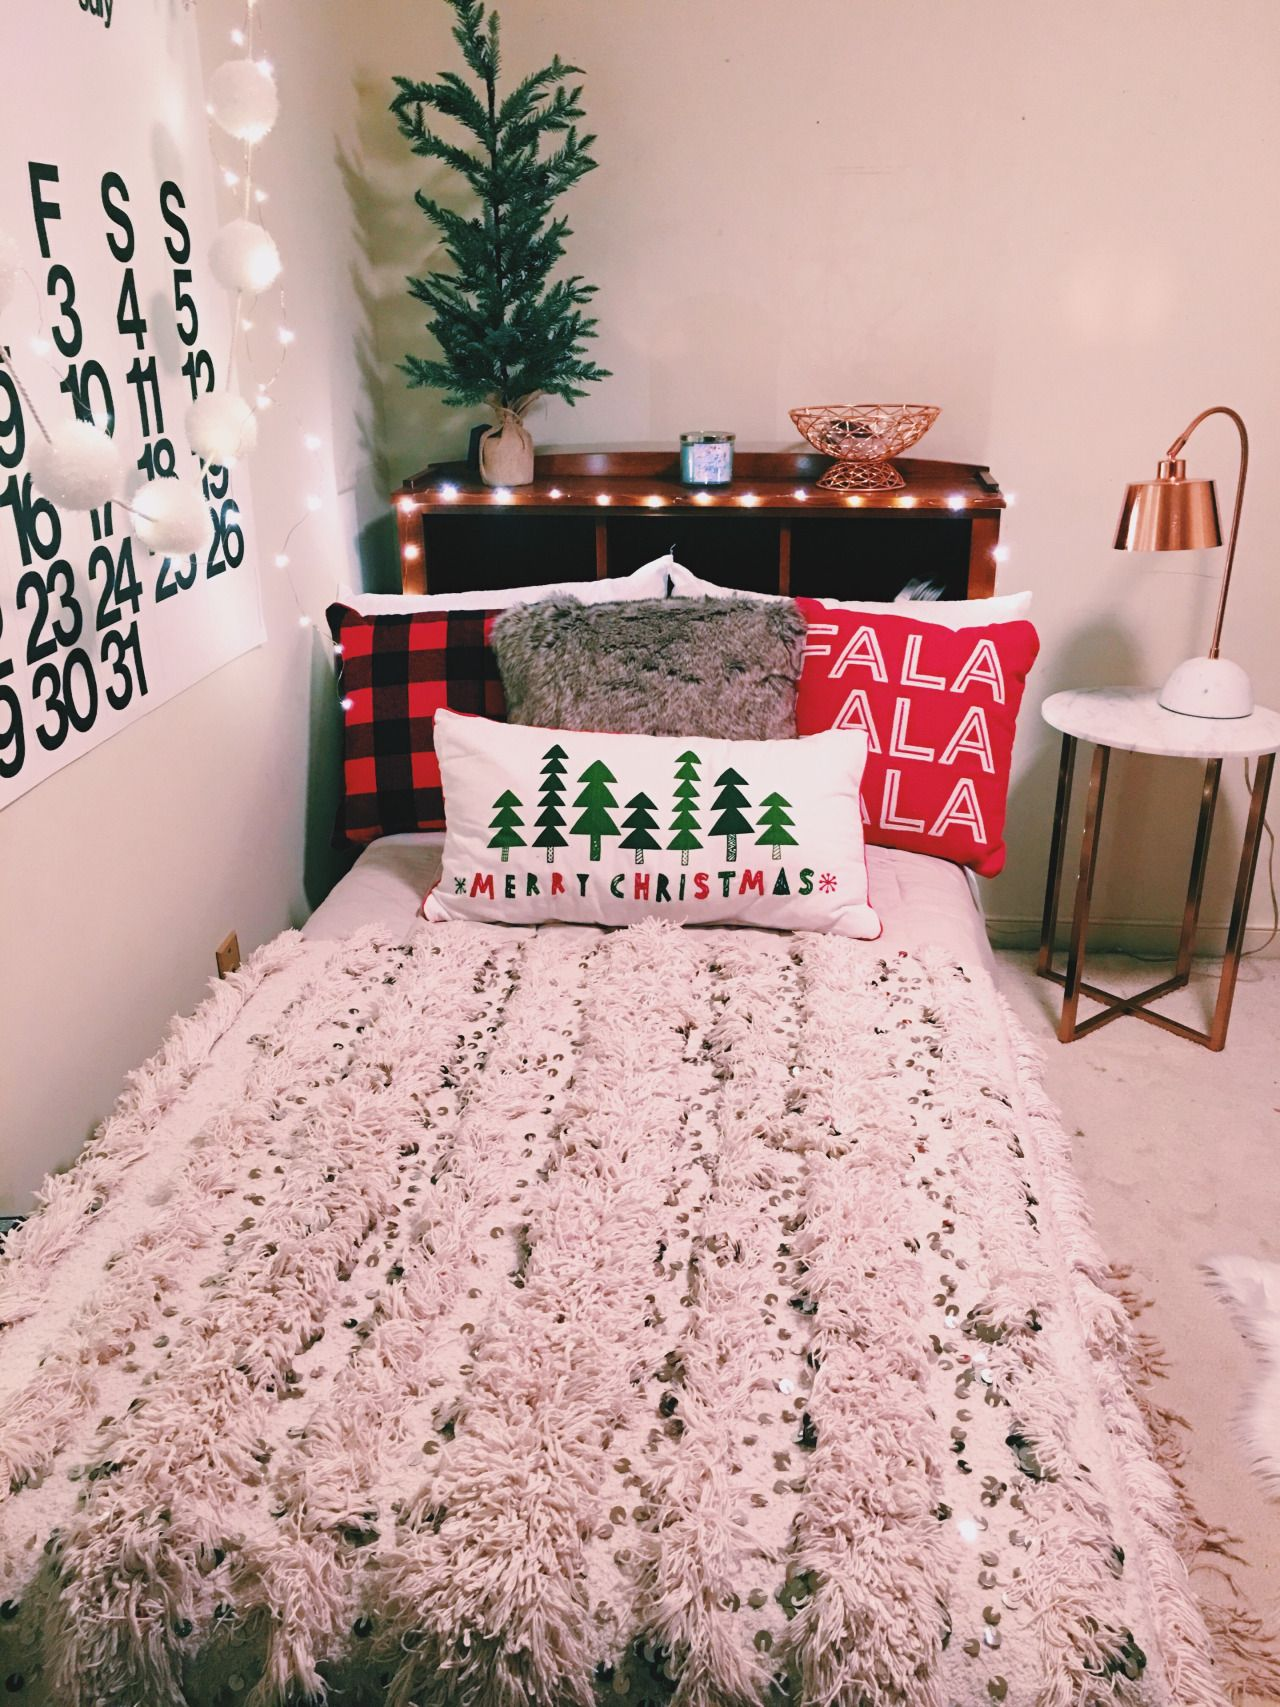 3 Easy Dorm Decorating Ideas for the Winter Holidays  Christmas InteriorsChristmas  BedroomChristmas. 3 Easy Dorm Decorating Ideas for the Winter Holidays   Decoration